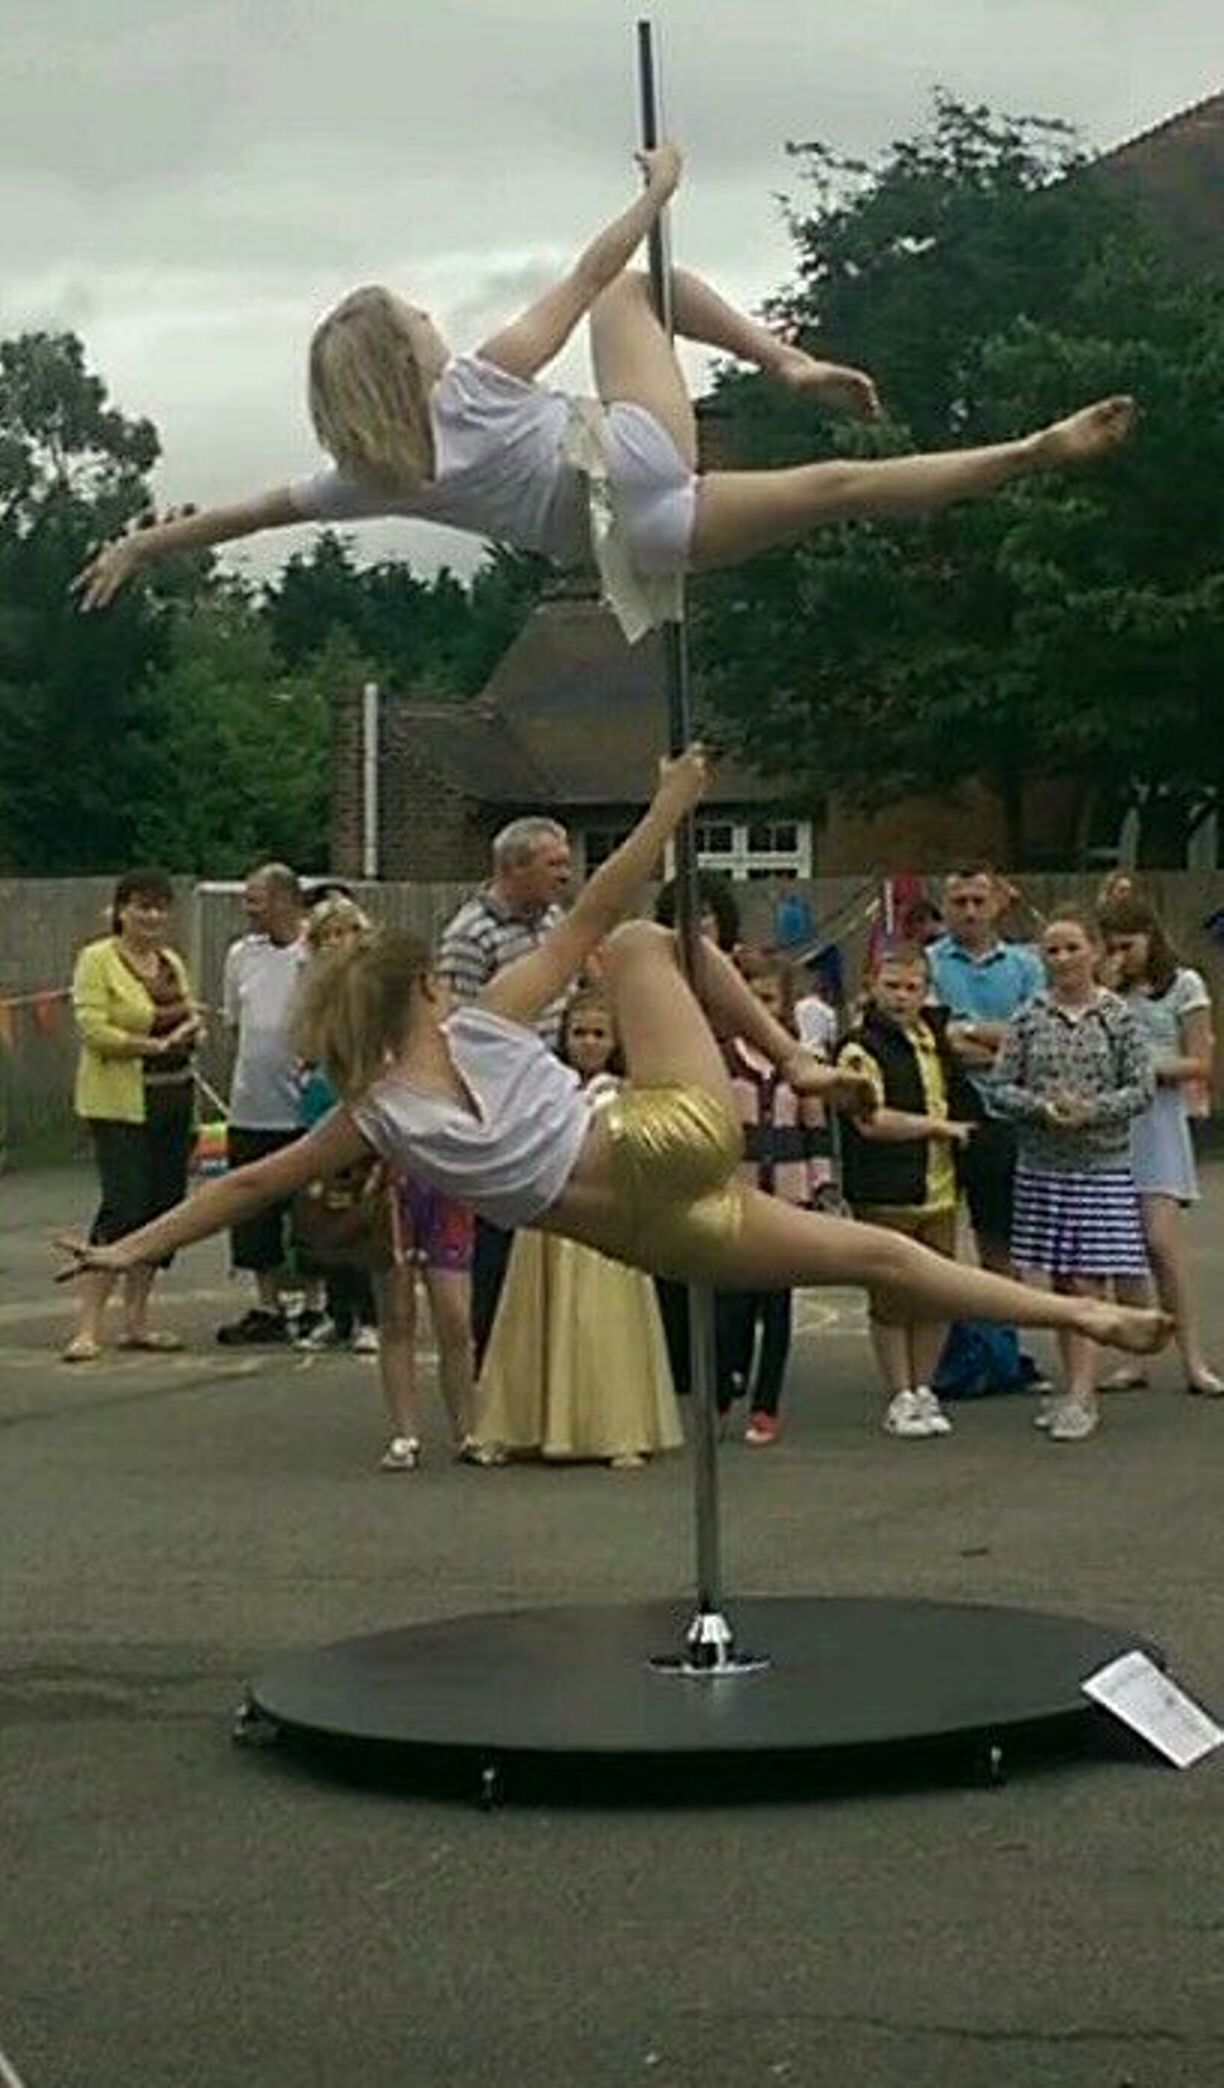 VIDEO: Watch pole-dance display at school fete branded 'sleazy' for involving girls as young as 4